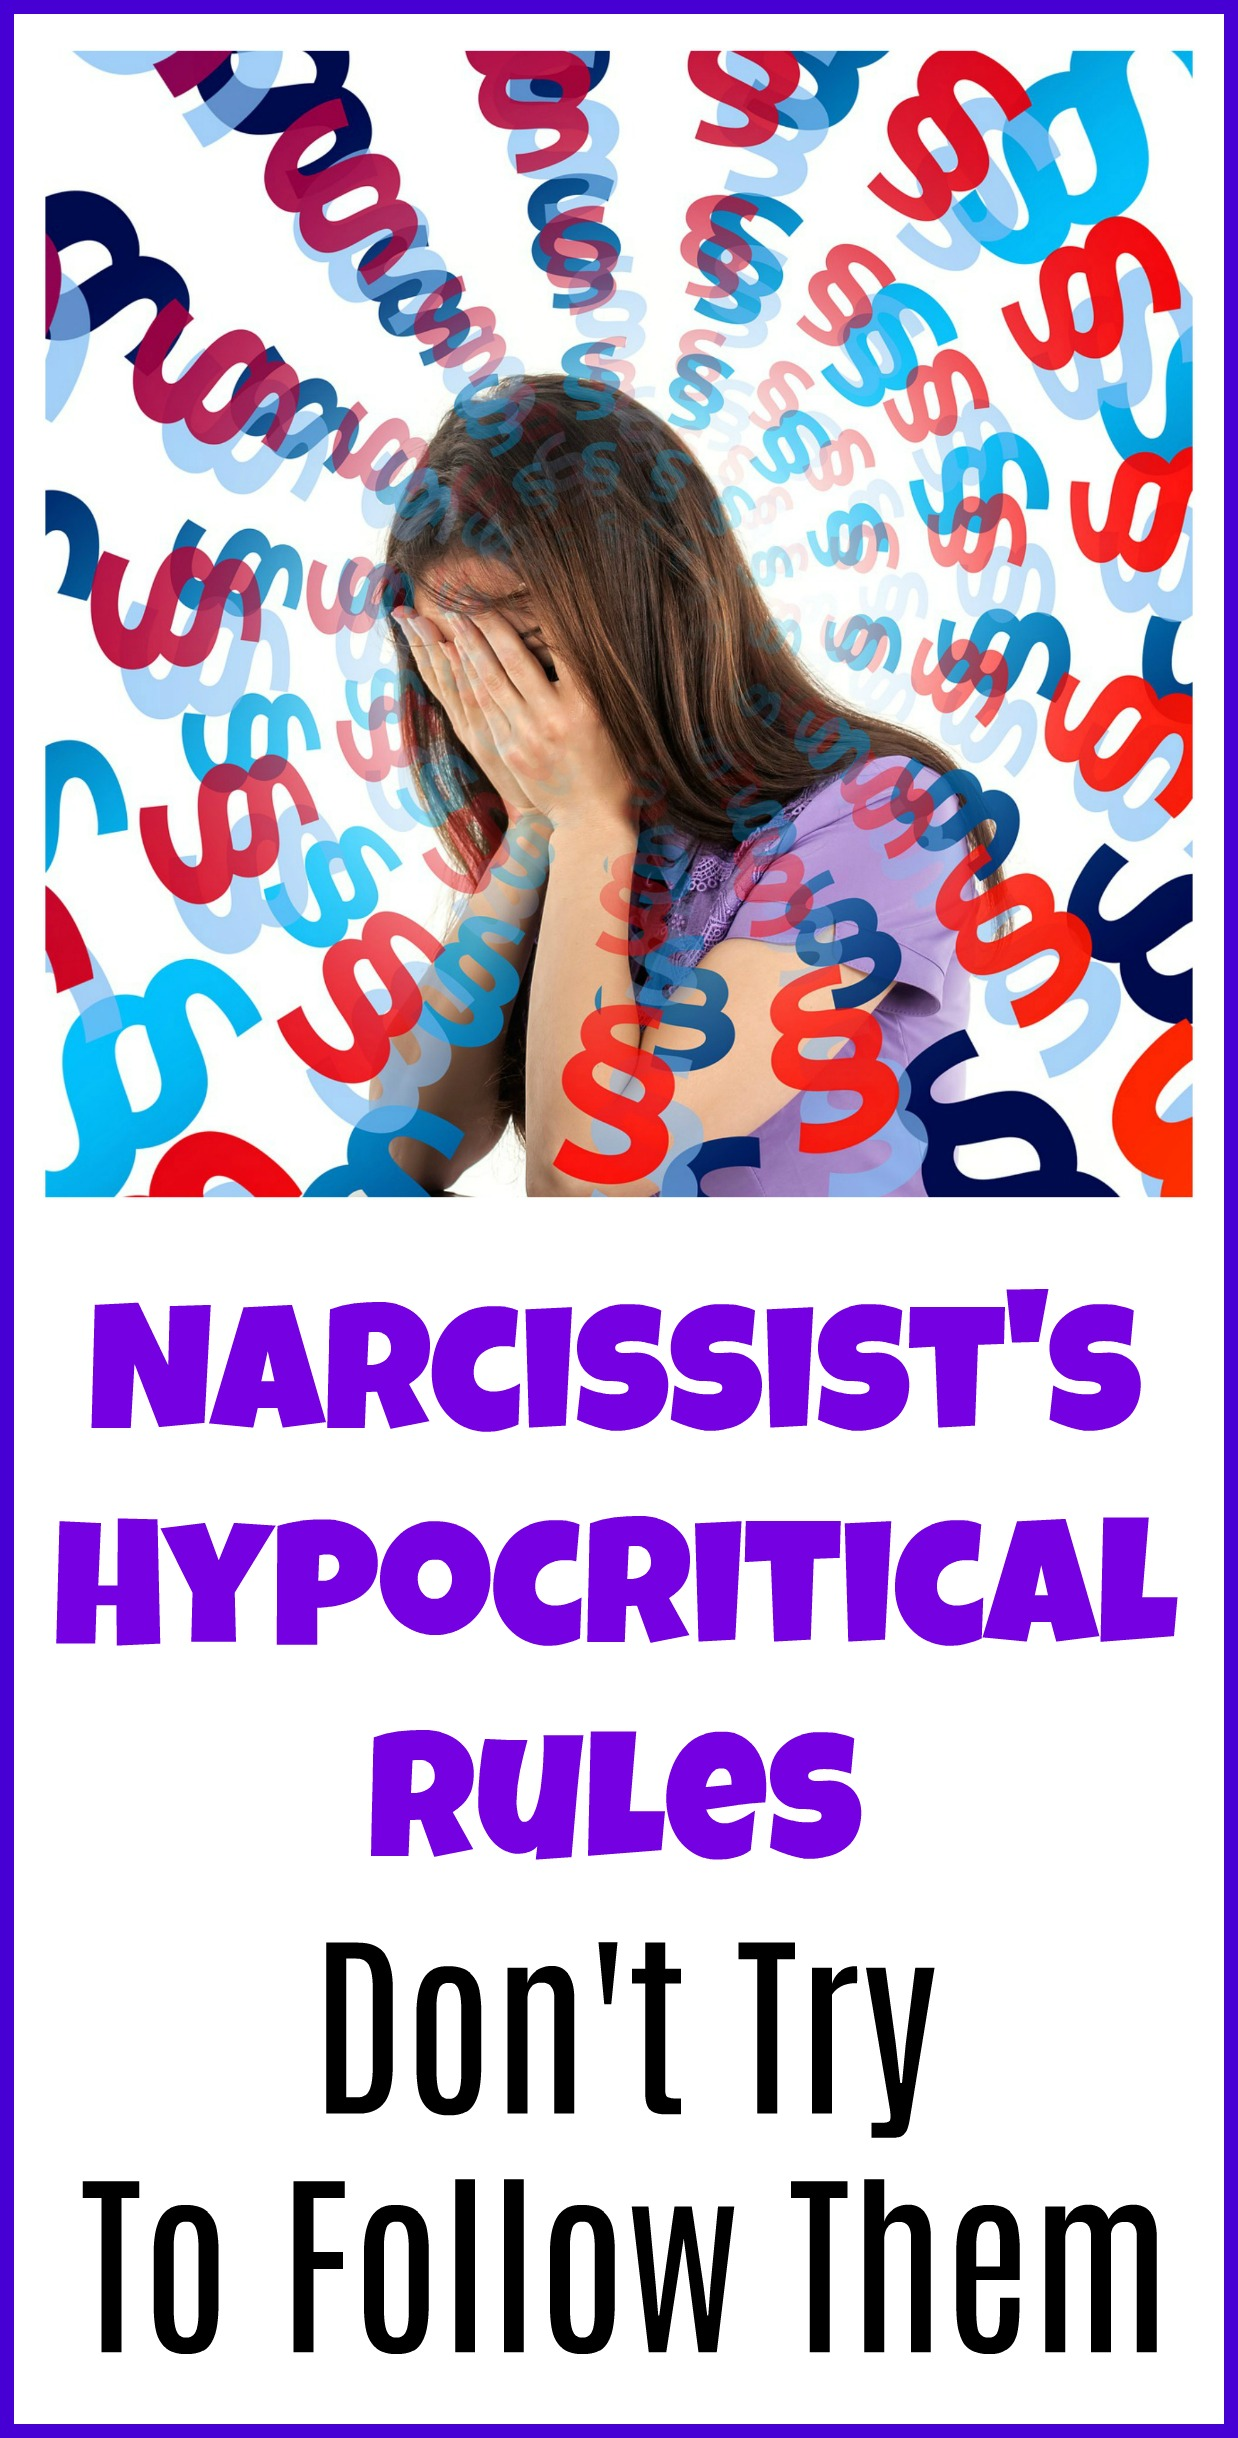 Living by the narcissist's hypocritical rules